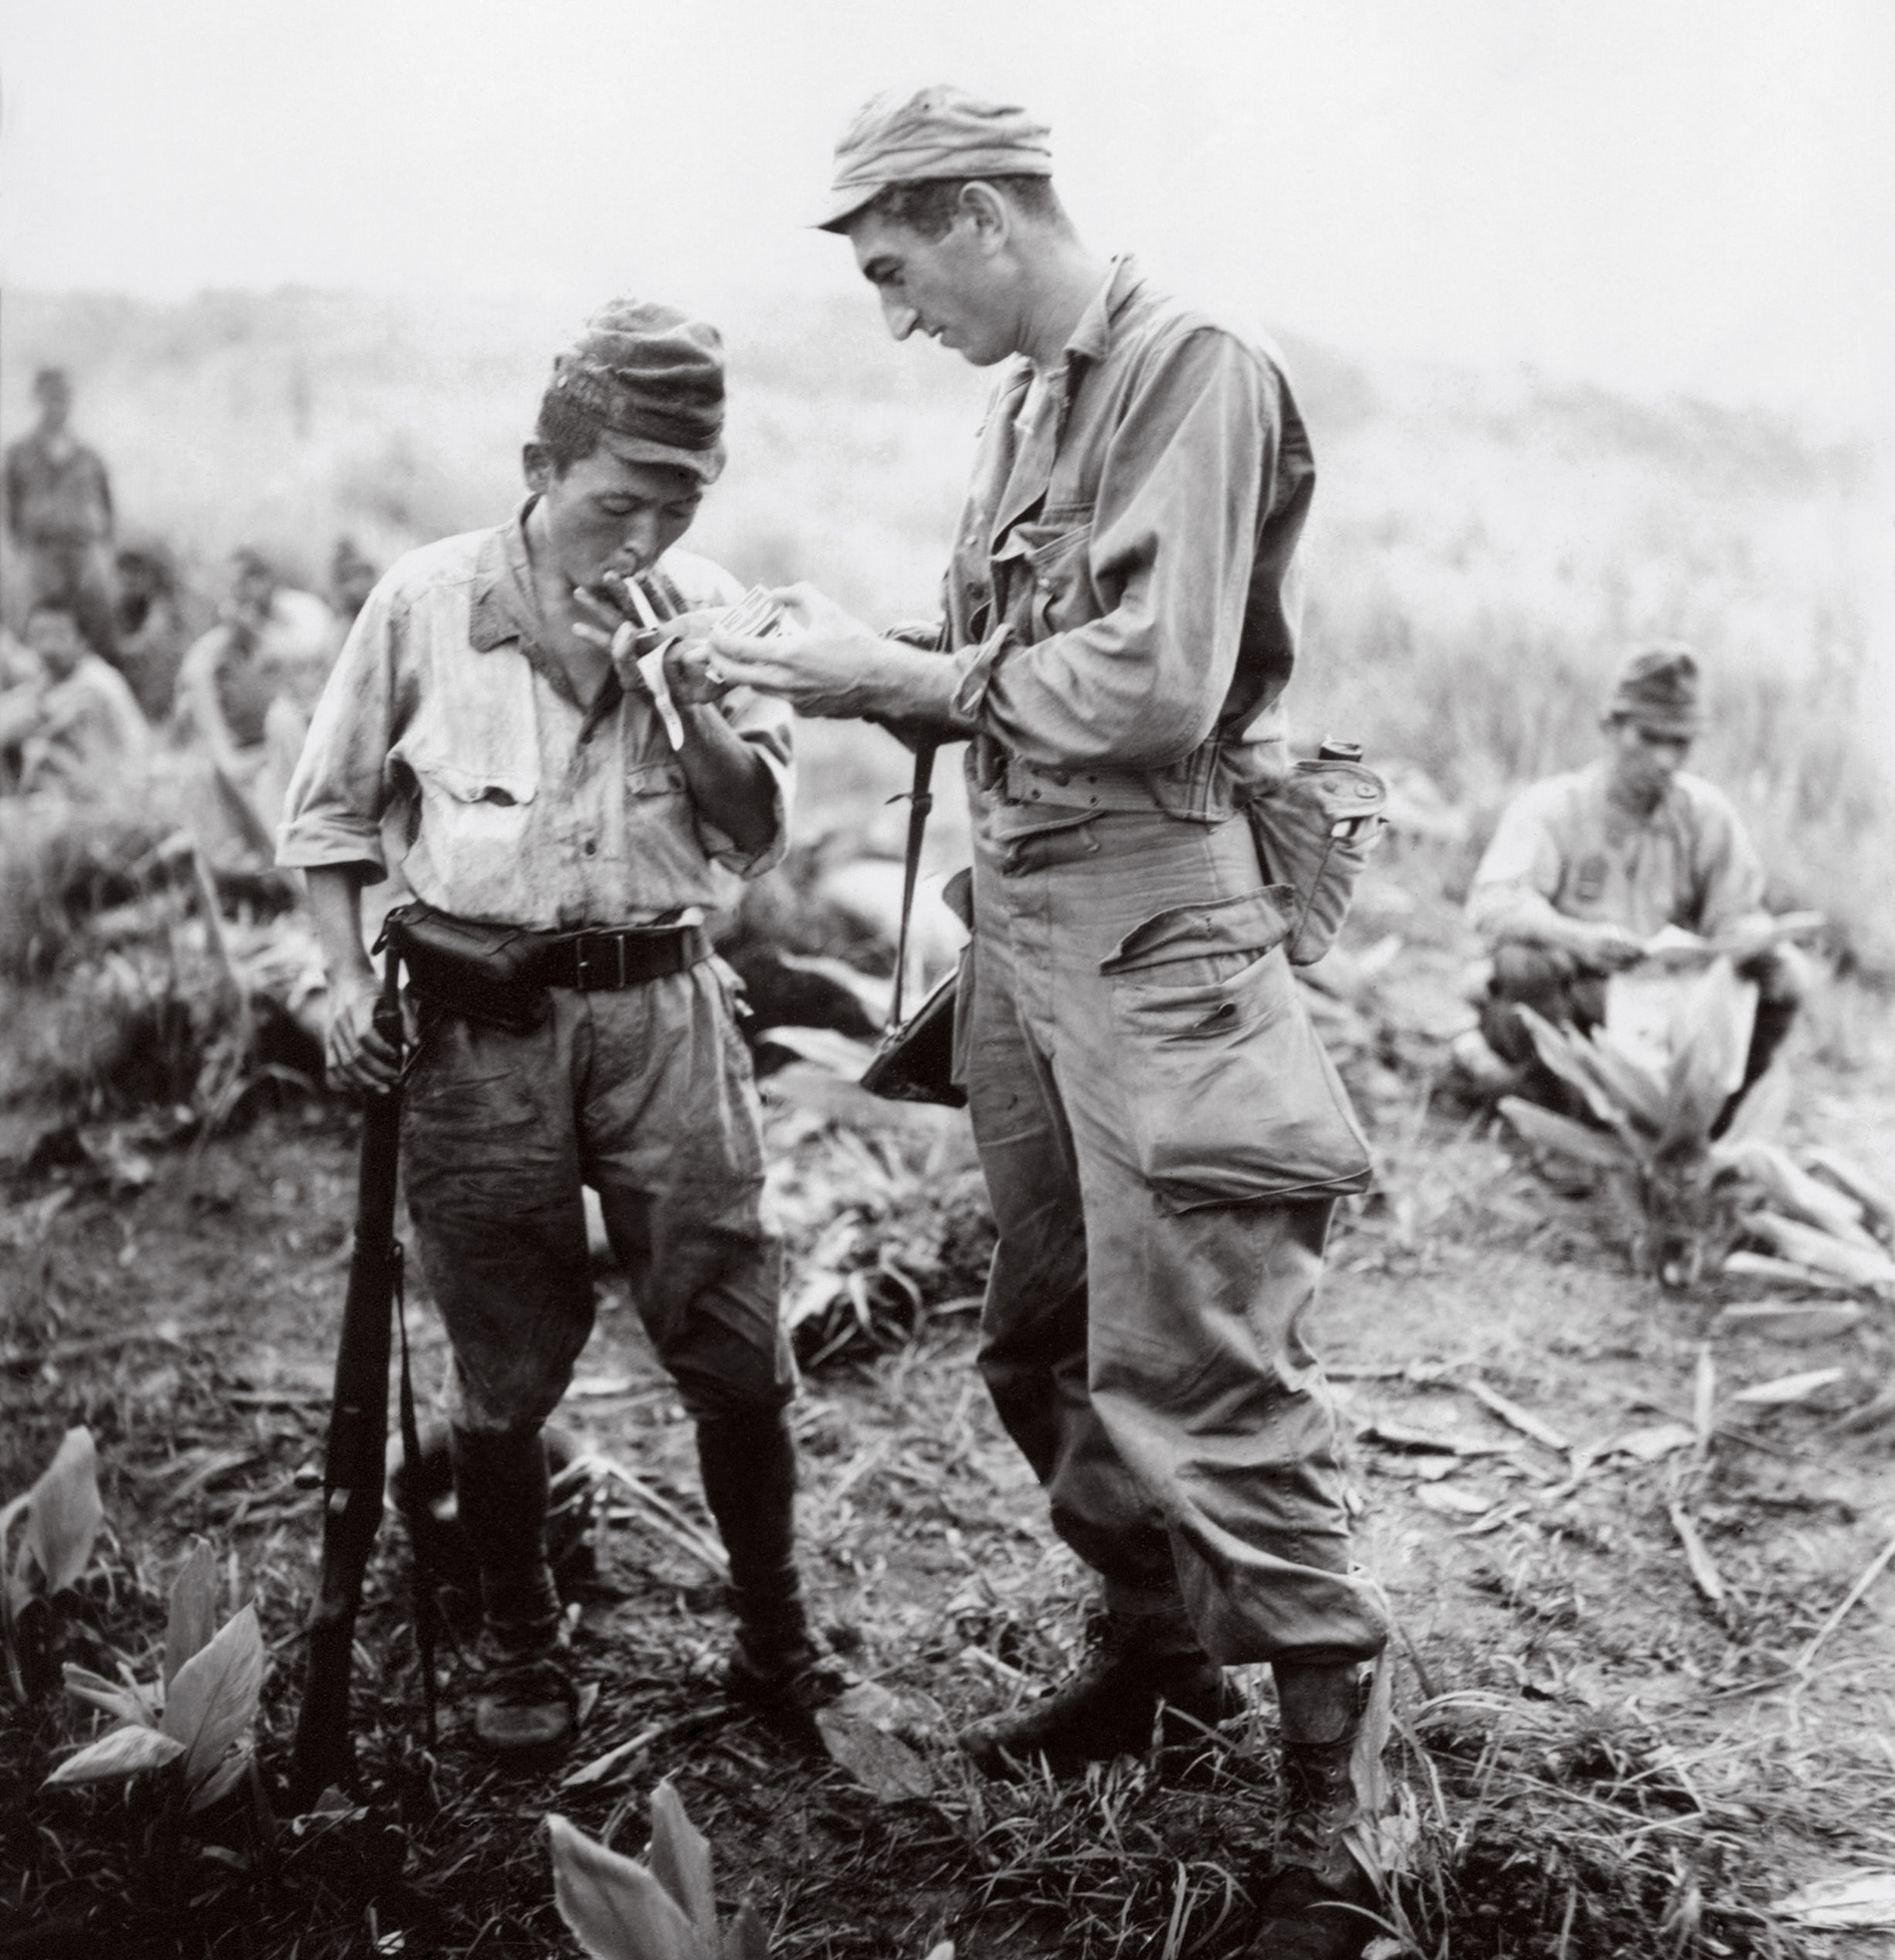 An American soldier lights the cigarette of a Japanese prisoner